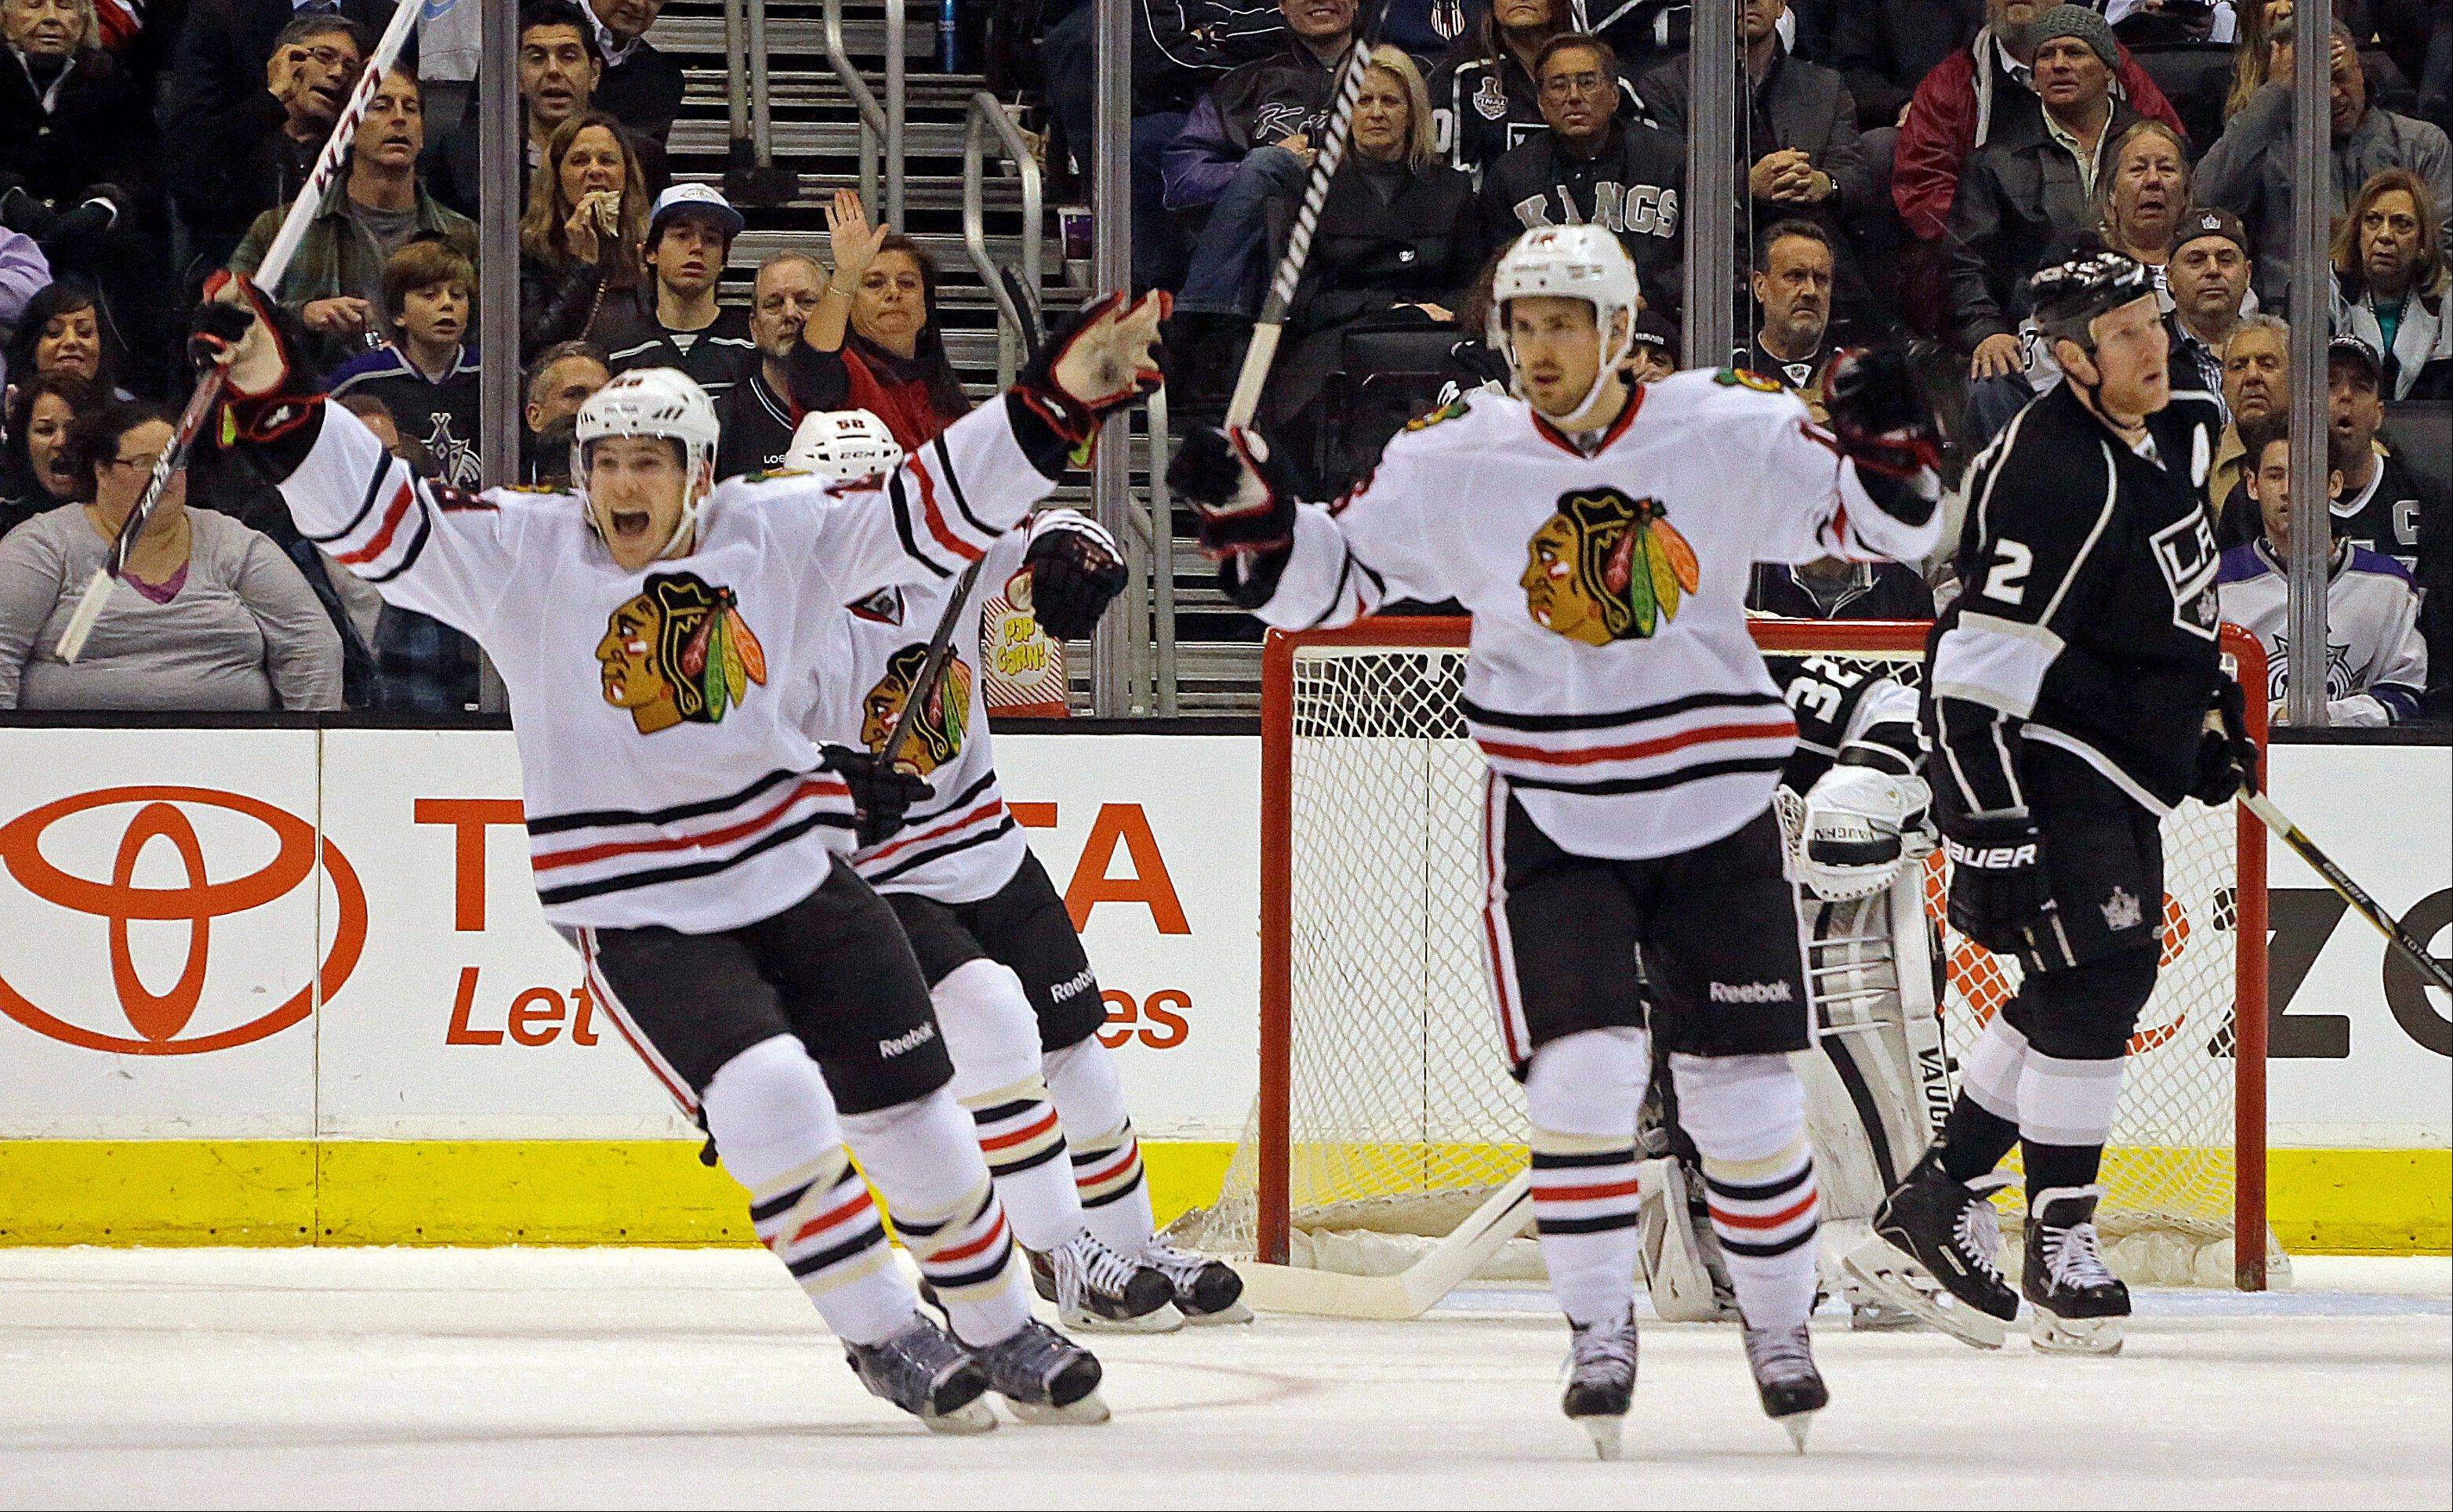 Blackhawks' Ben Smith (28), left, and defenseman Michael Kostka (6) celebrate a goal by Marcus Kruger, not shown, against Los Angeles Kings goalie Jonathan Quick (32) and defenseman Matt Greene (2) look on in the second period of an NHL hockey game in Los Angeles, Monday, Feb. 3, 2014.